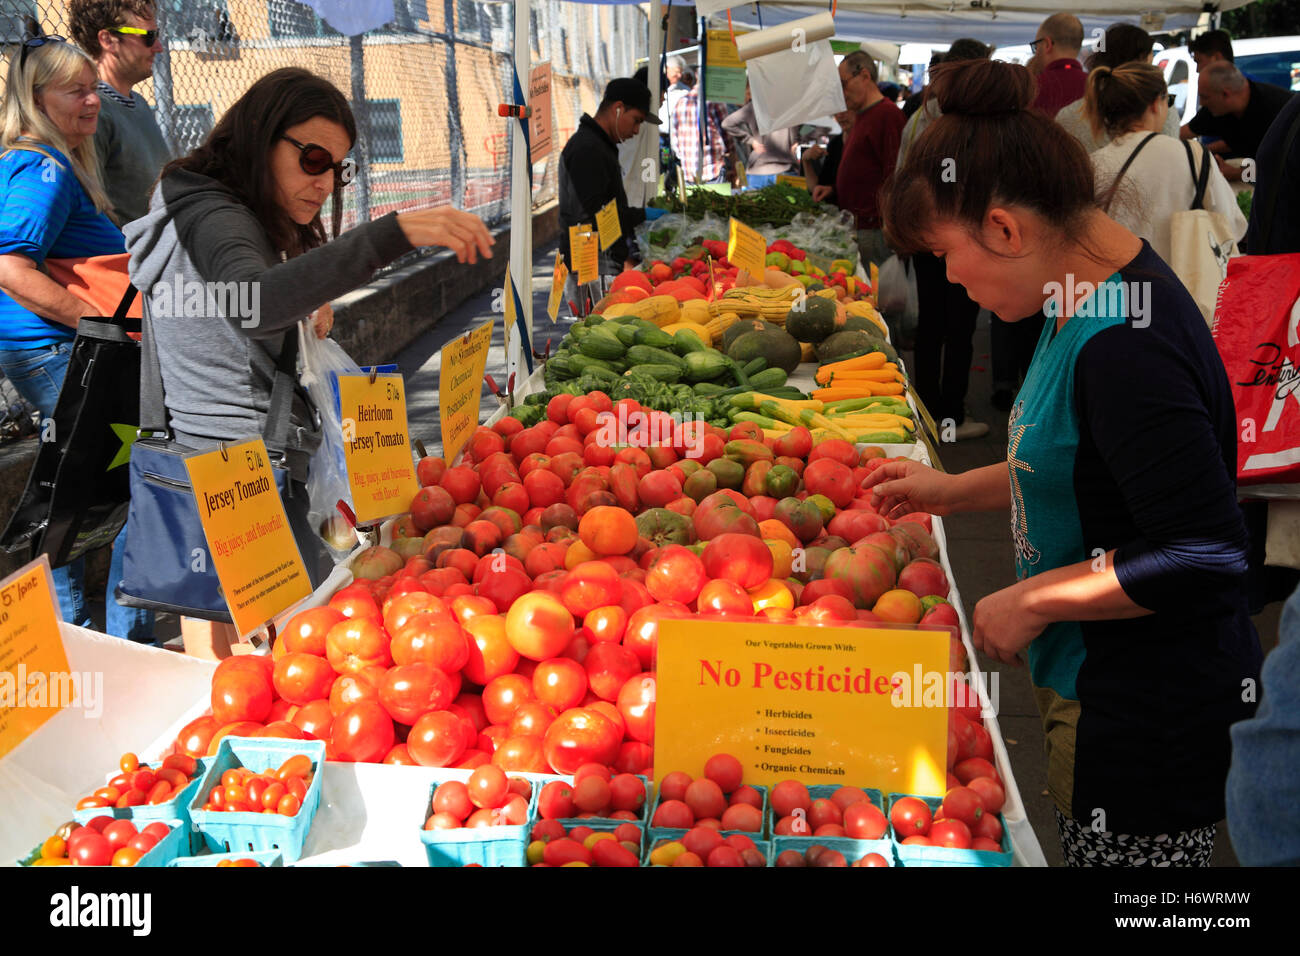 Market at Carroll Park, Brooklyn, New York, USA - Stock Image